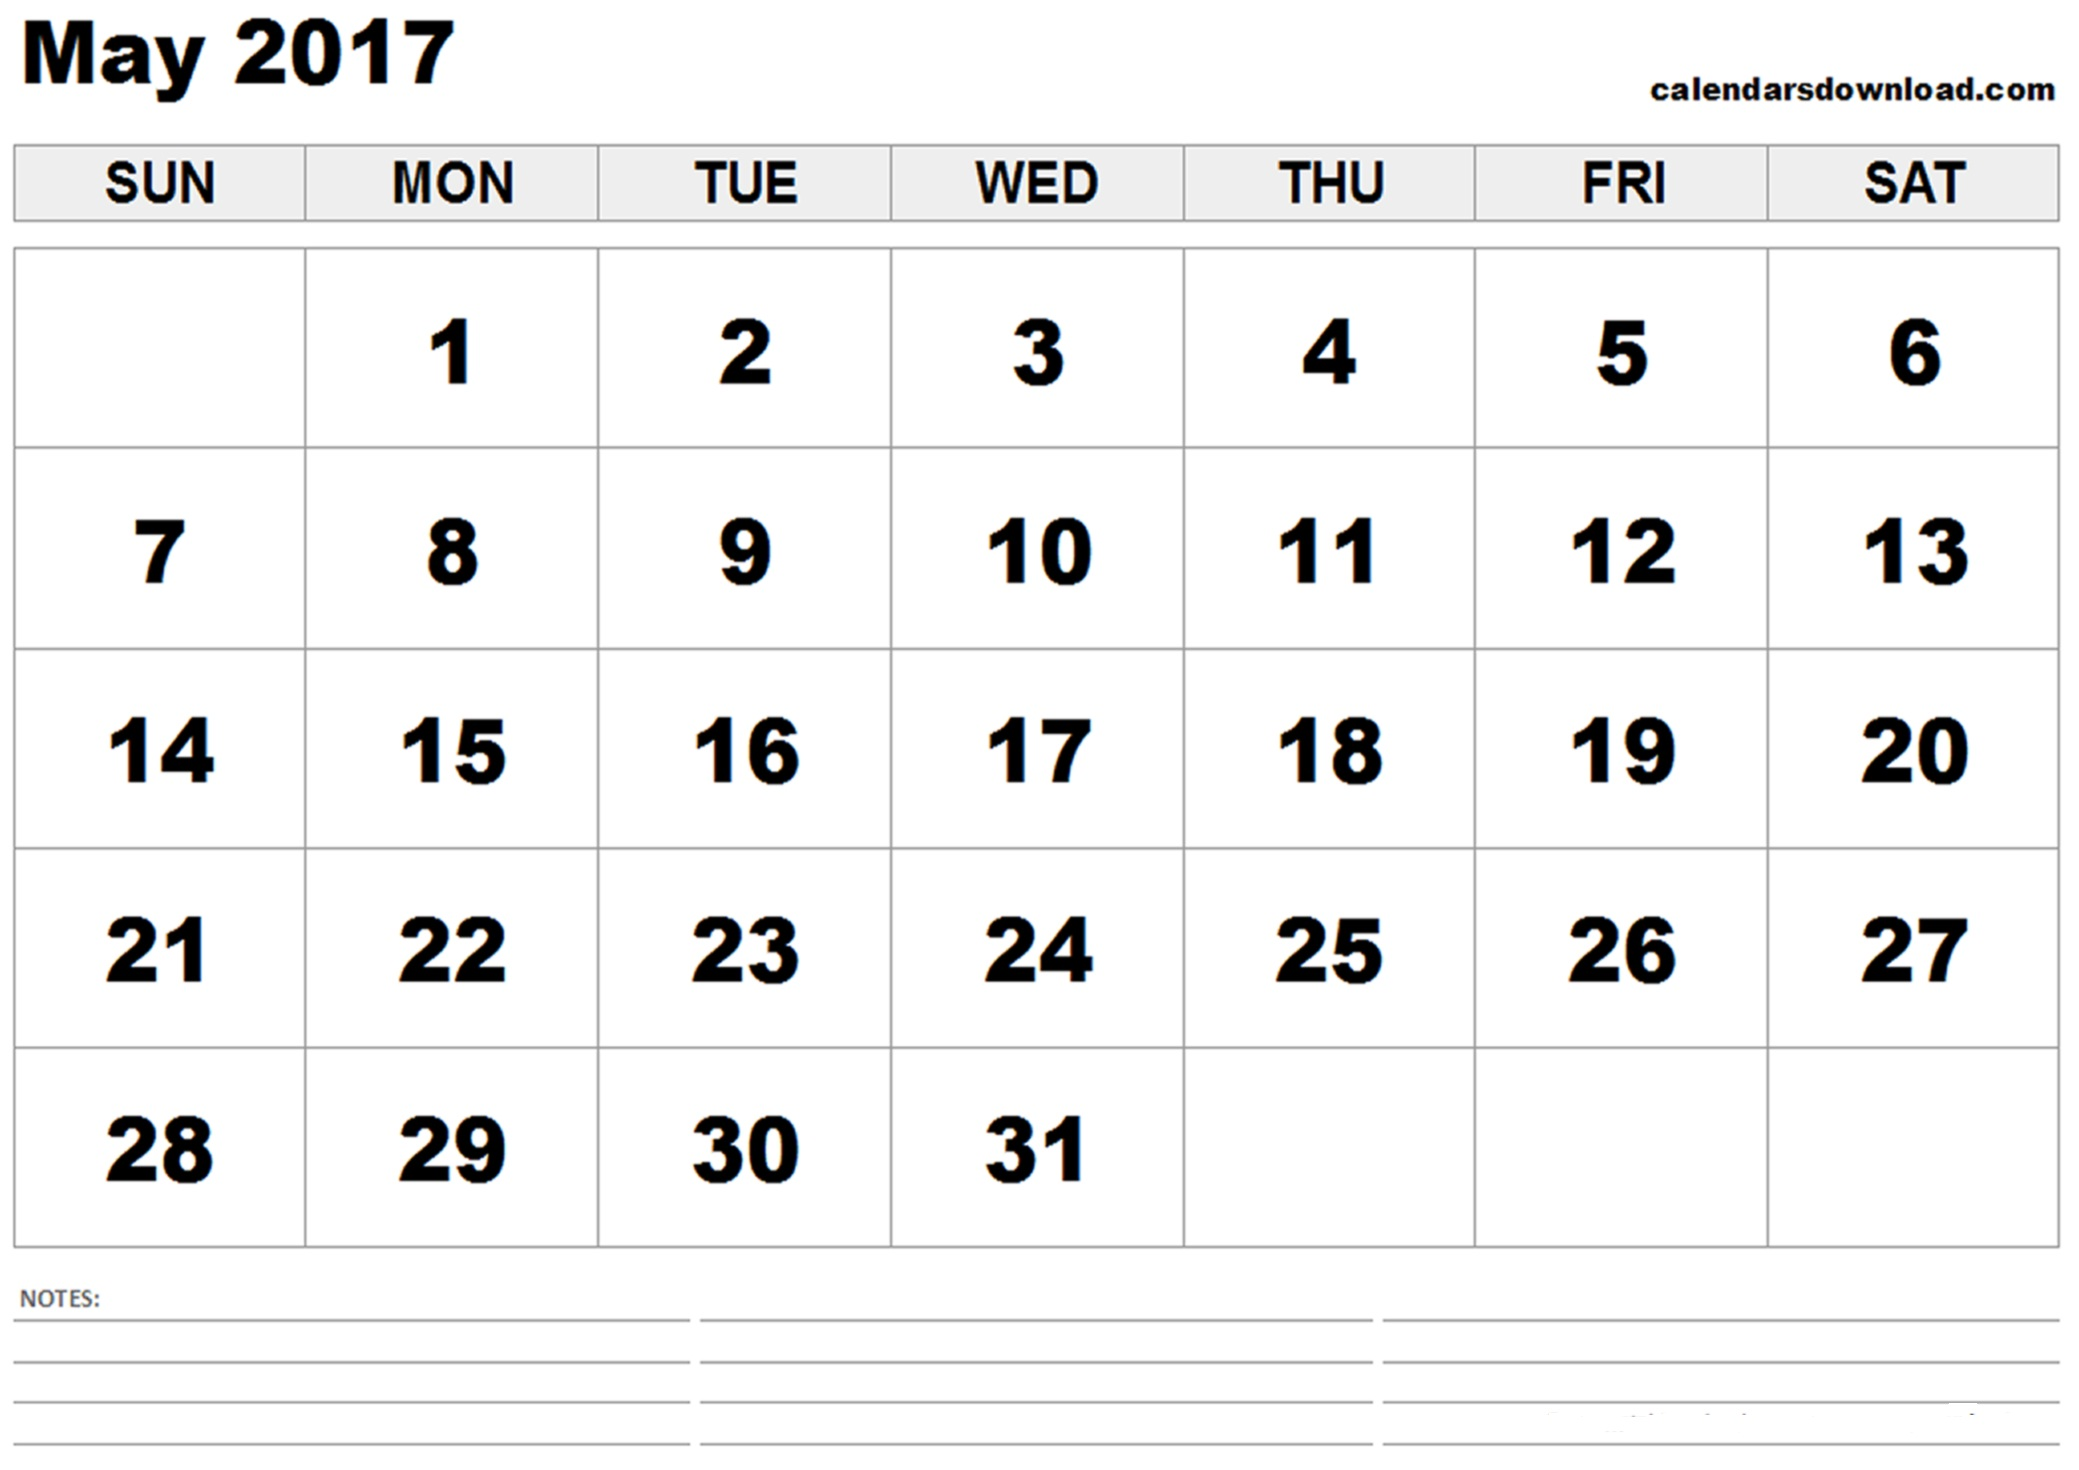 May 2017 Printable Calendar Templates